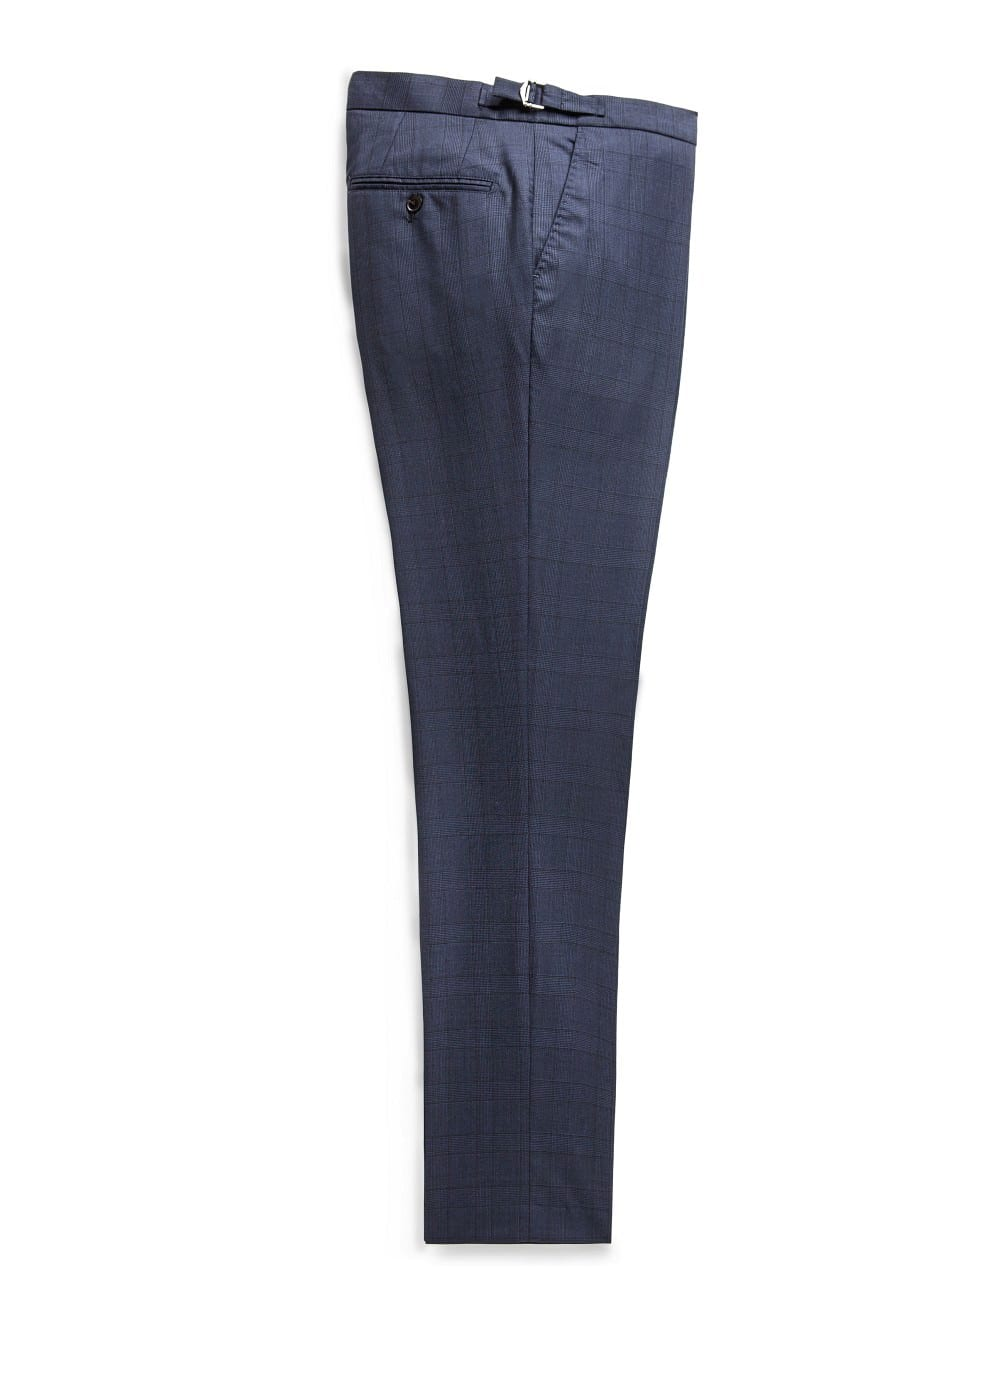 Prince of wales suit trousers | MANGO